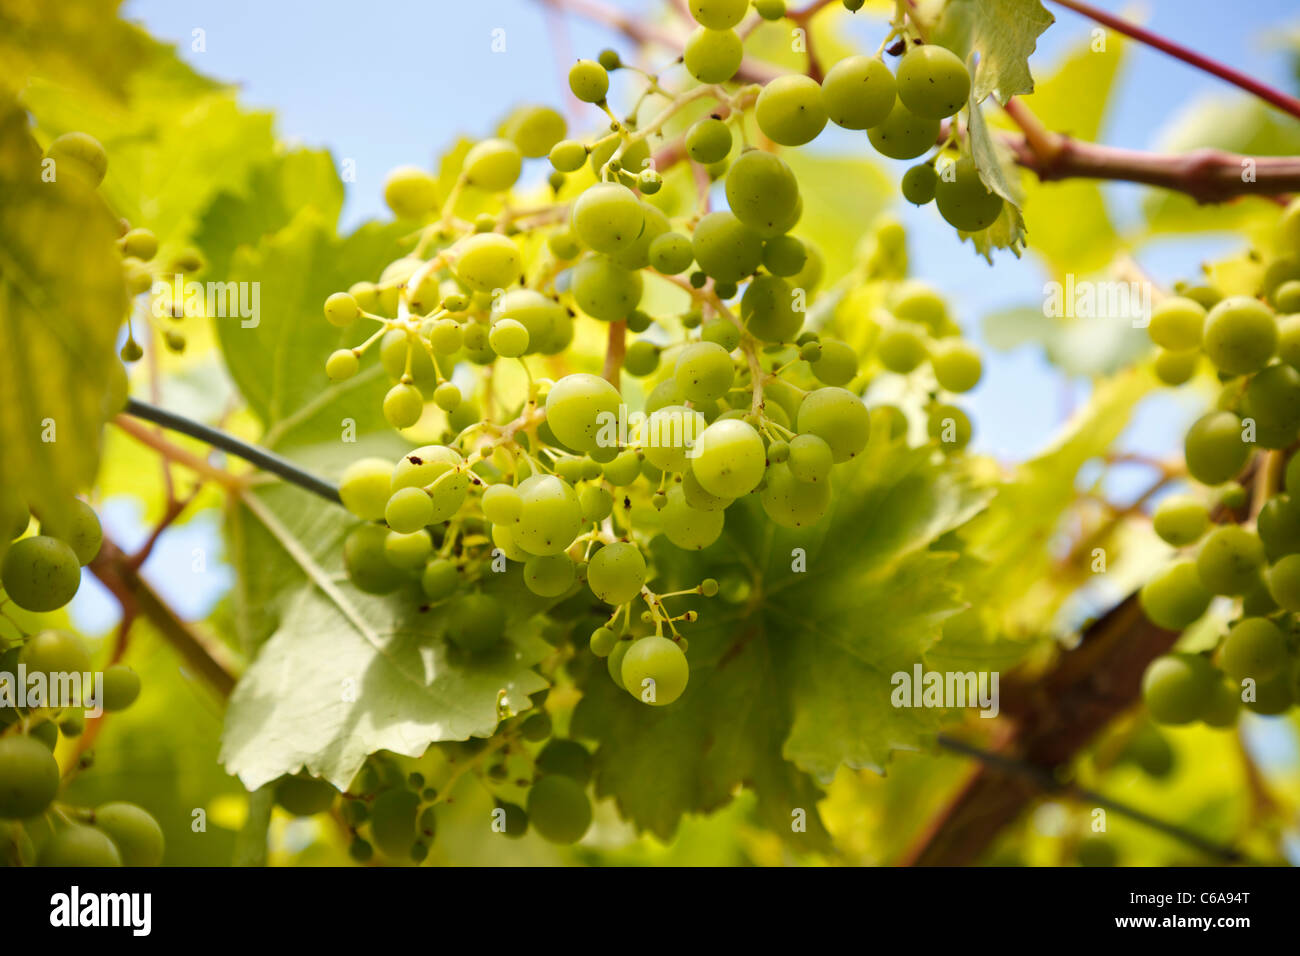 Young grapes on the vine - Stock Image